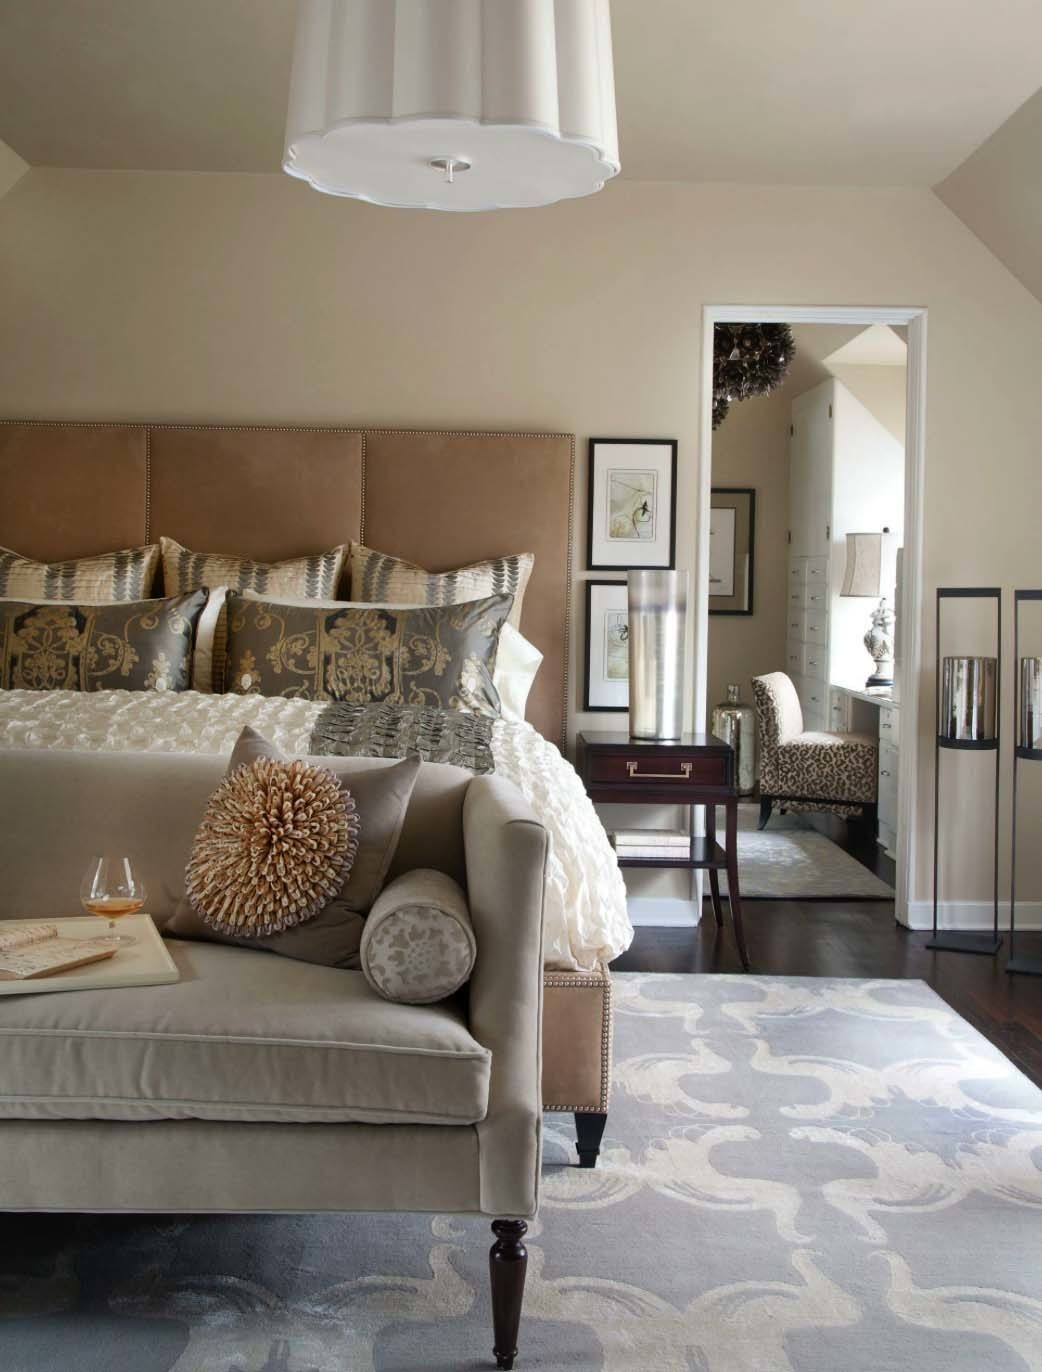 35 Spectacular Neutral Bedroom Schemes For Relaxation Traditional Bedroom Design Neutral Bedroom Design Bedroom Design